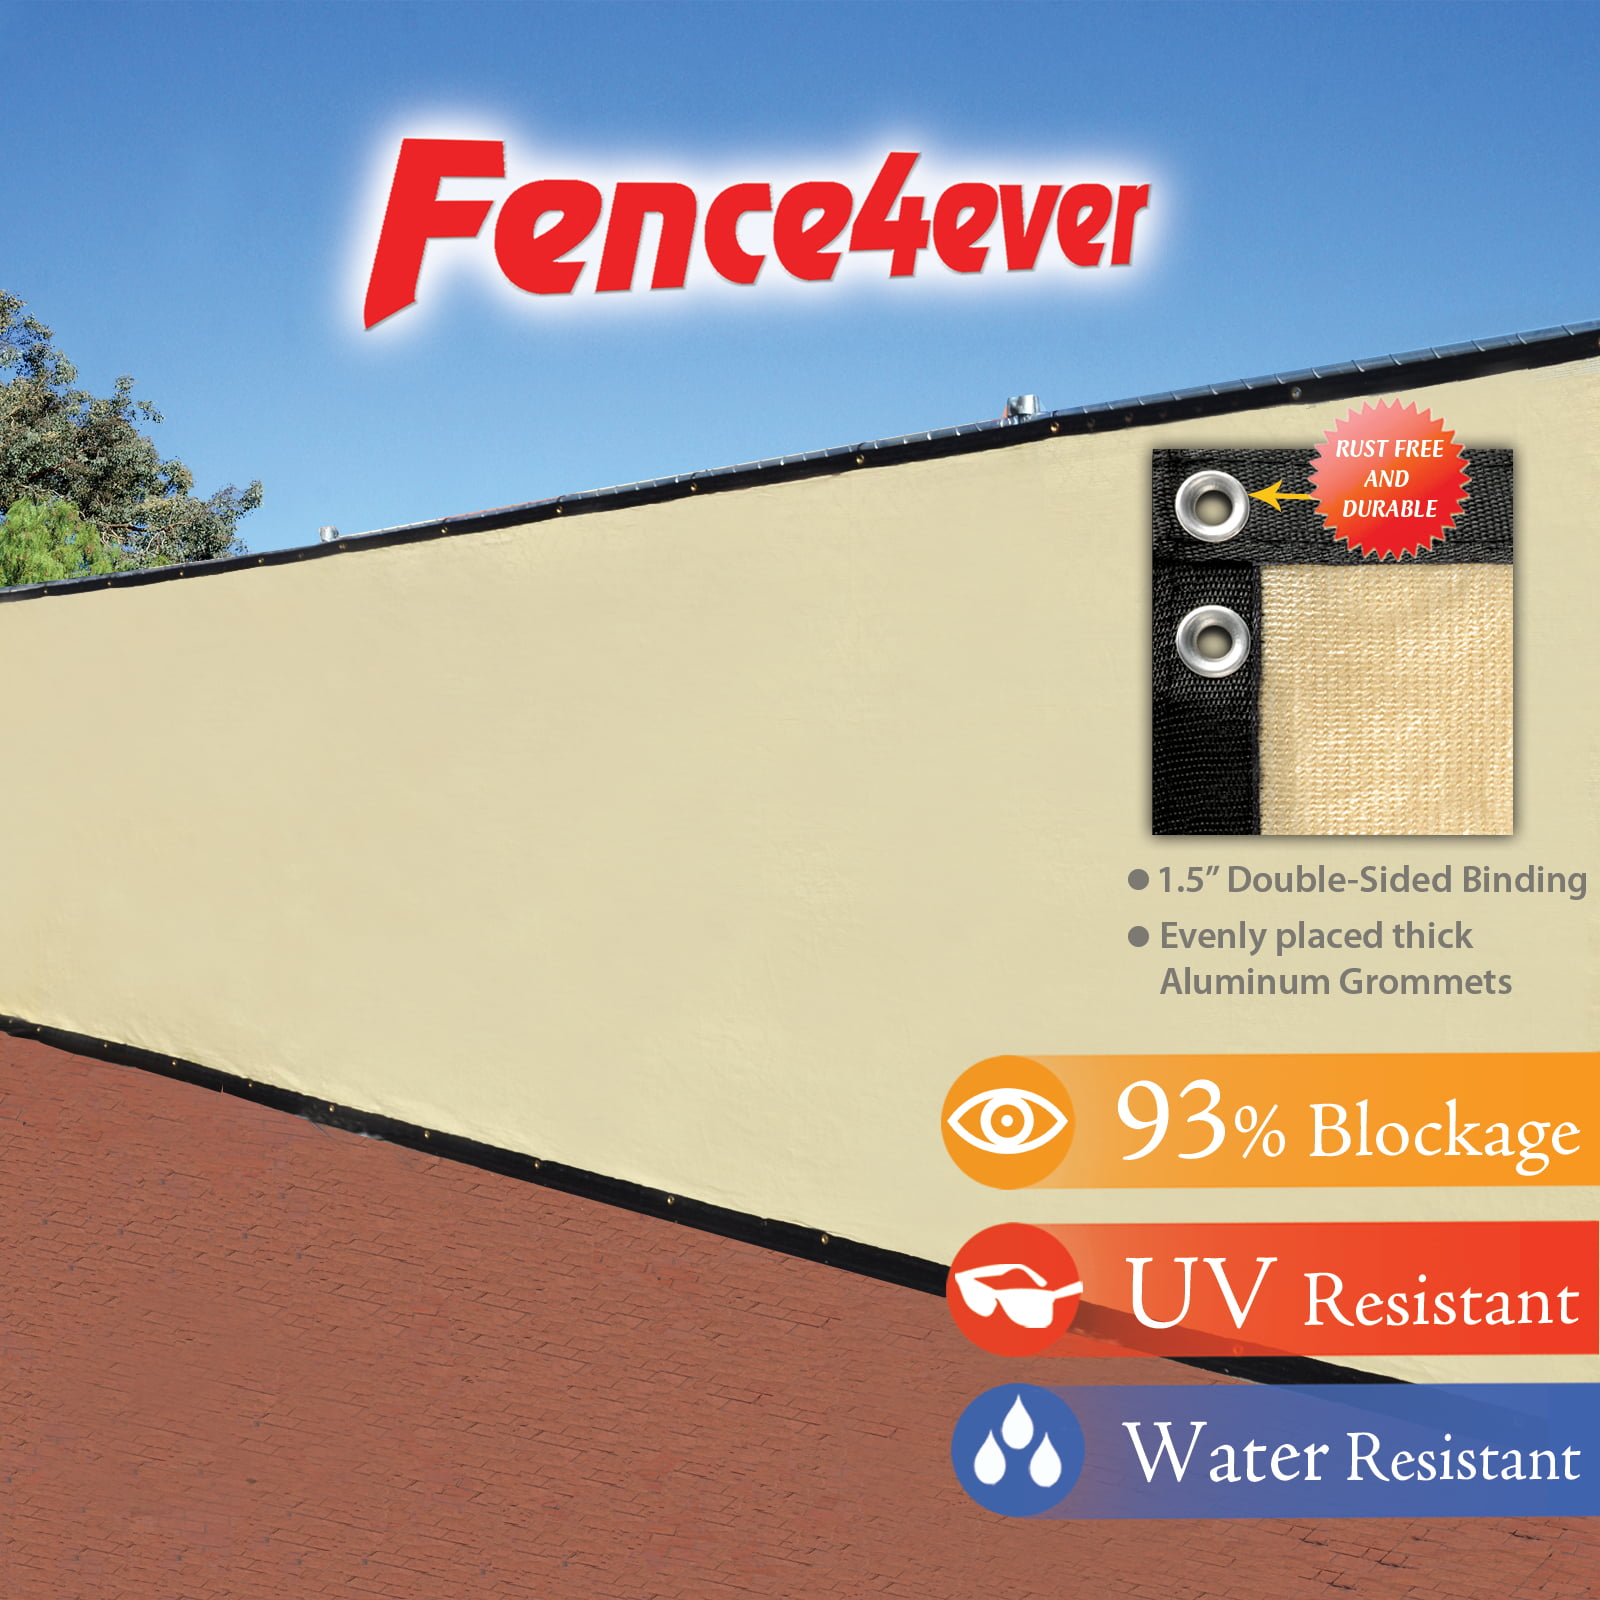 Fence4ever Tan Beige 5'x50' Fence Privacy Screen Windscreen Shade Cover Mesh Fabric Tarp by